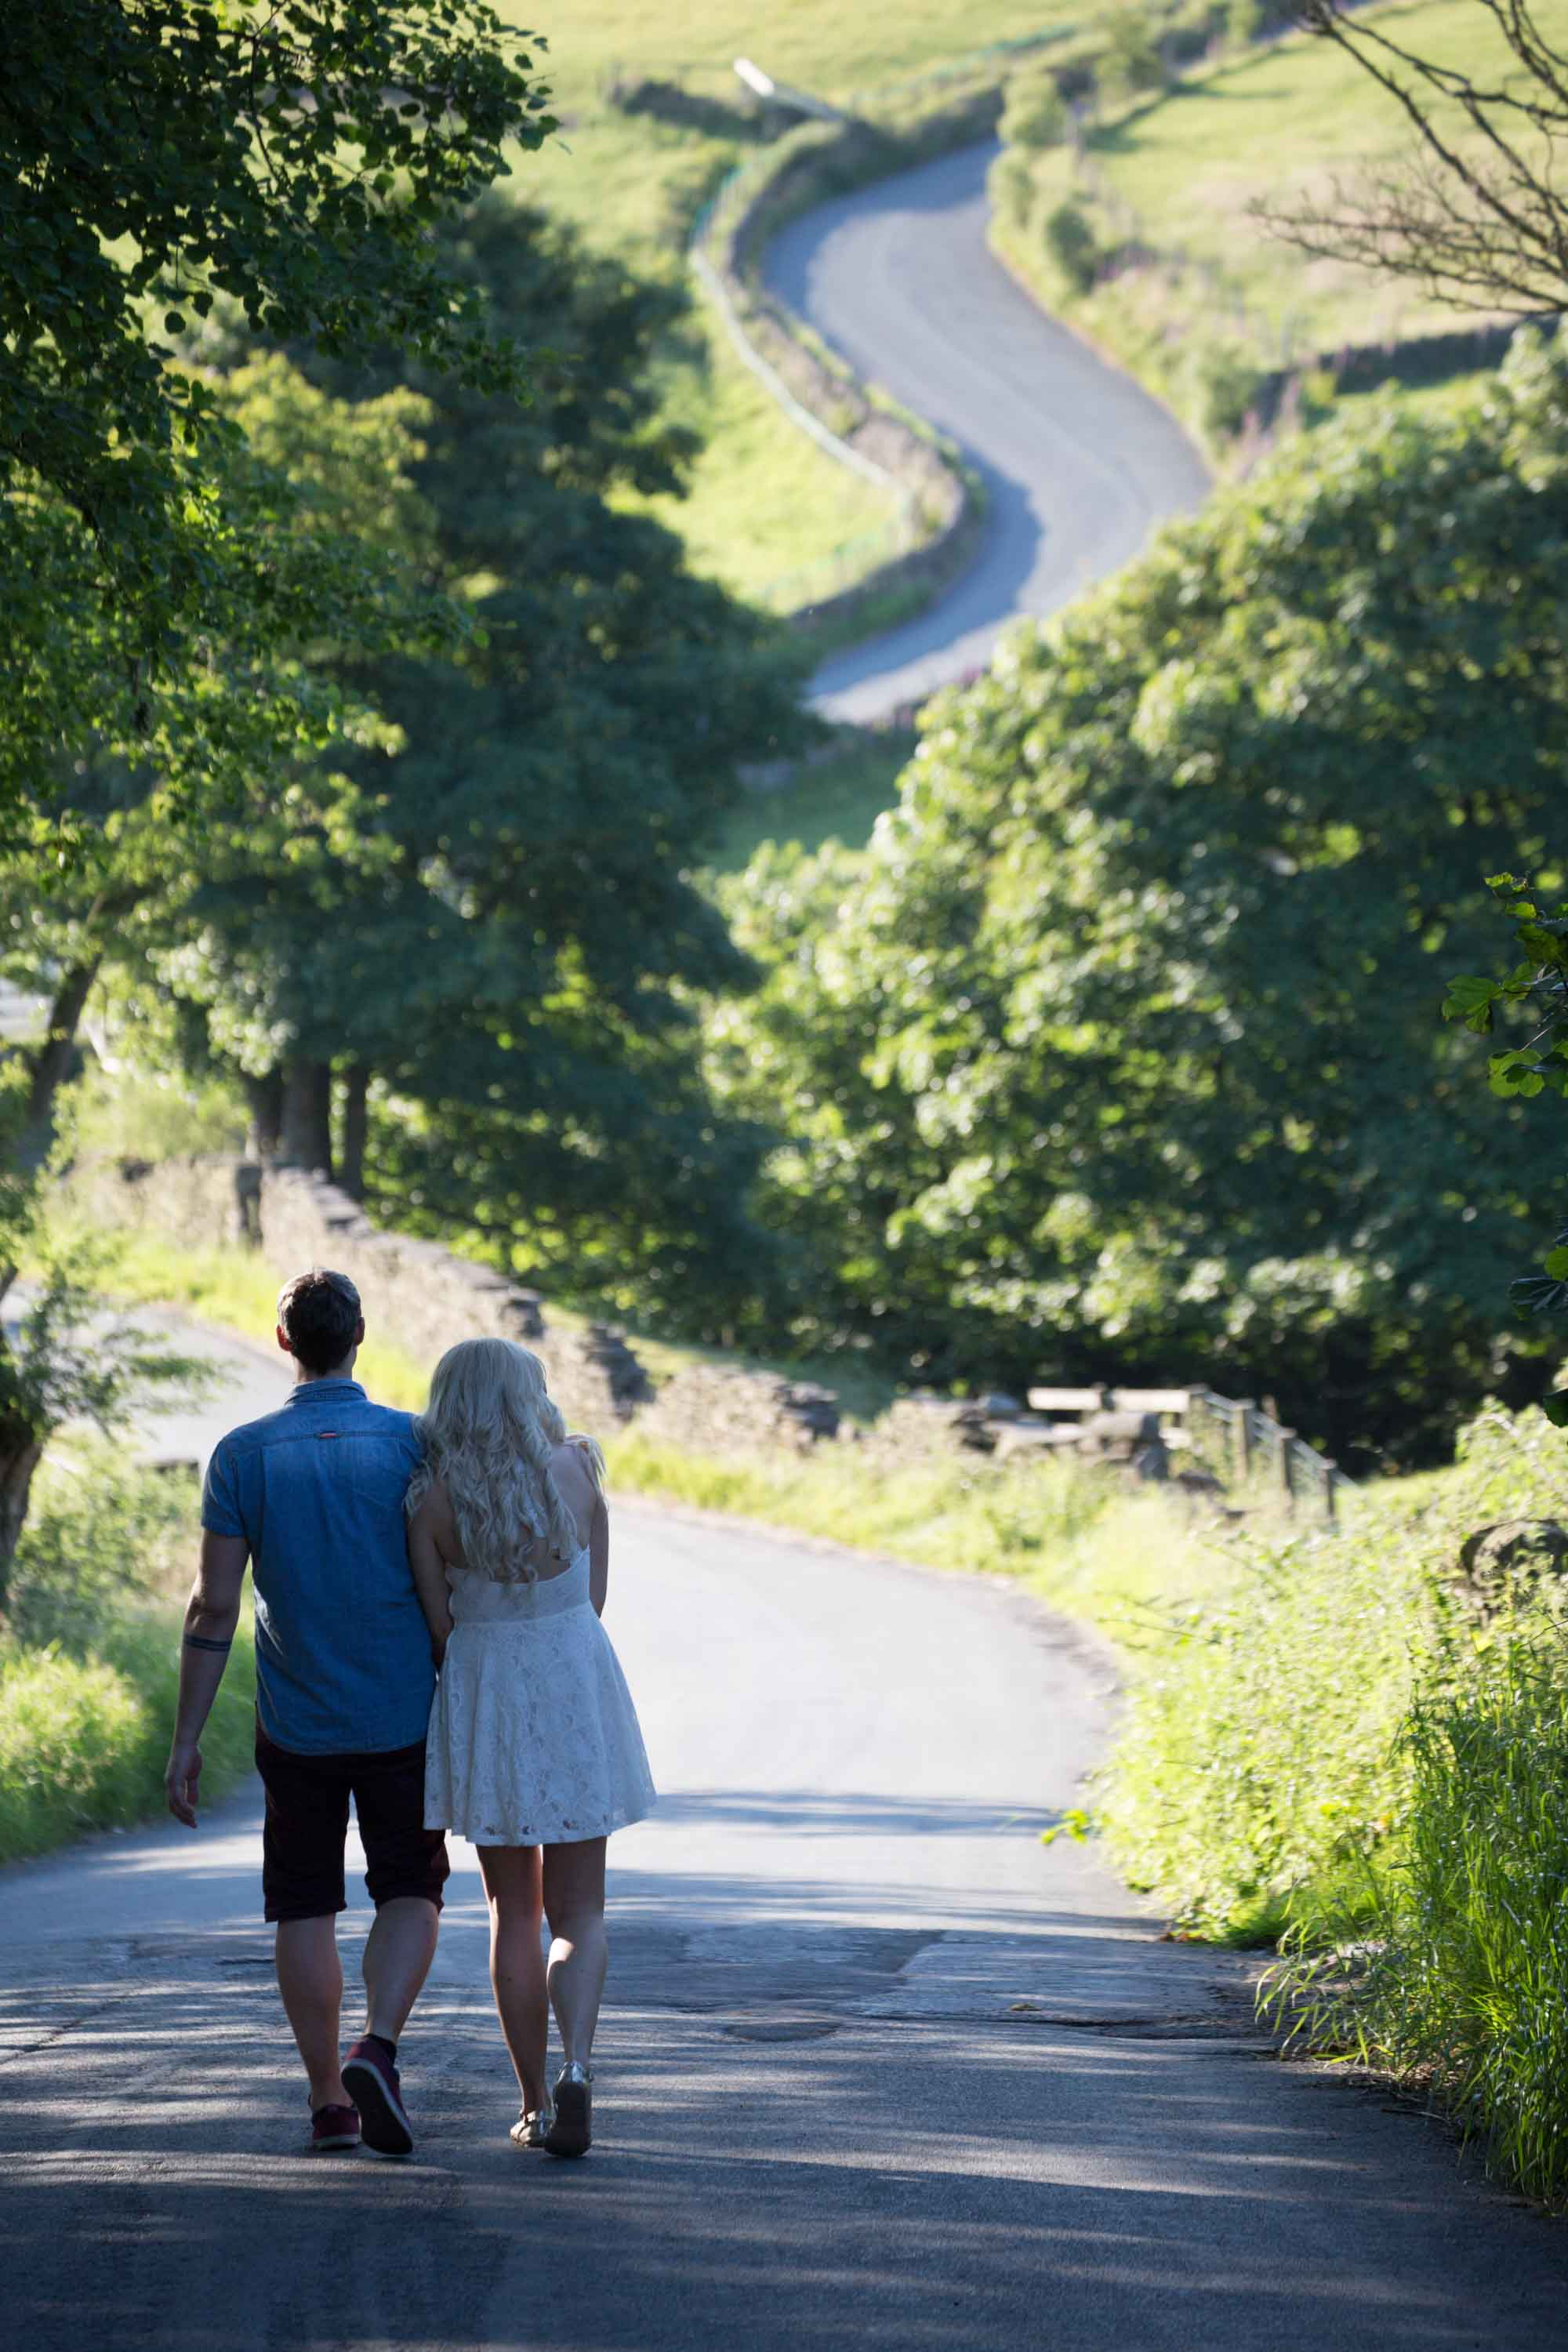 walking down the road together